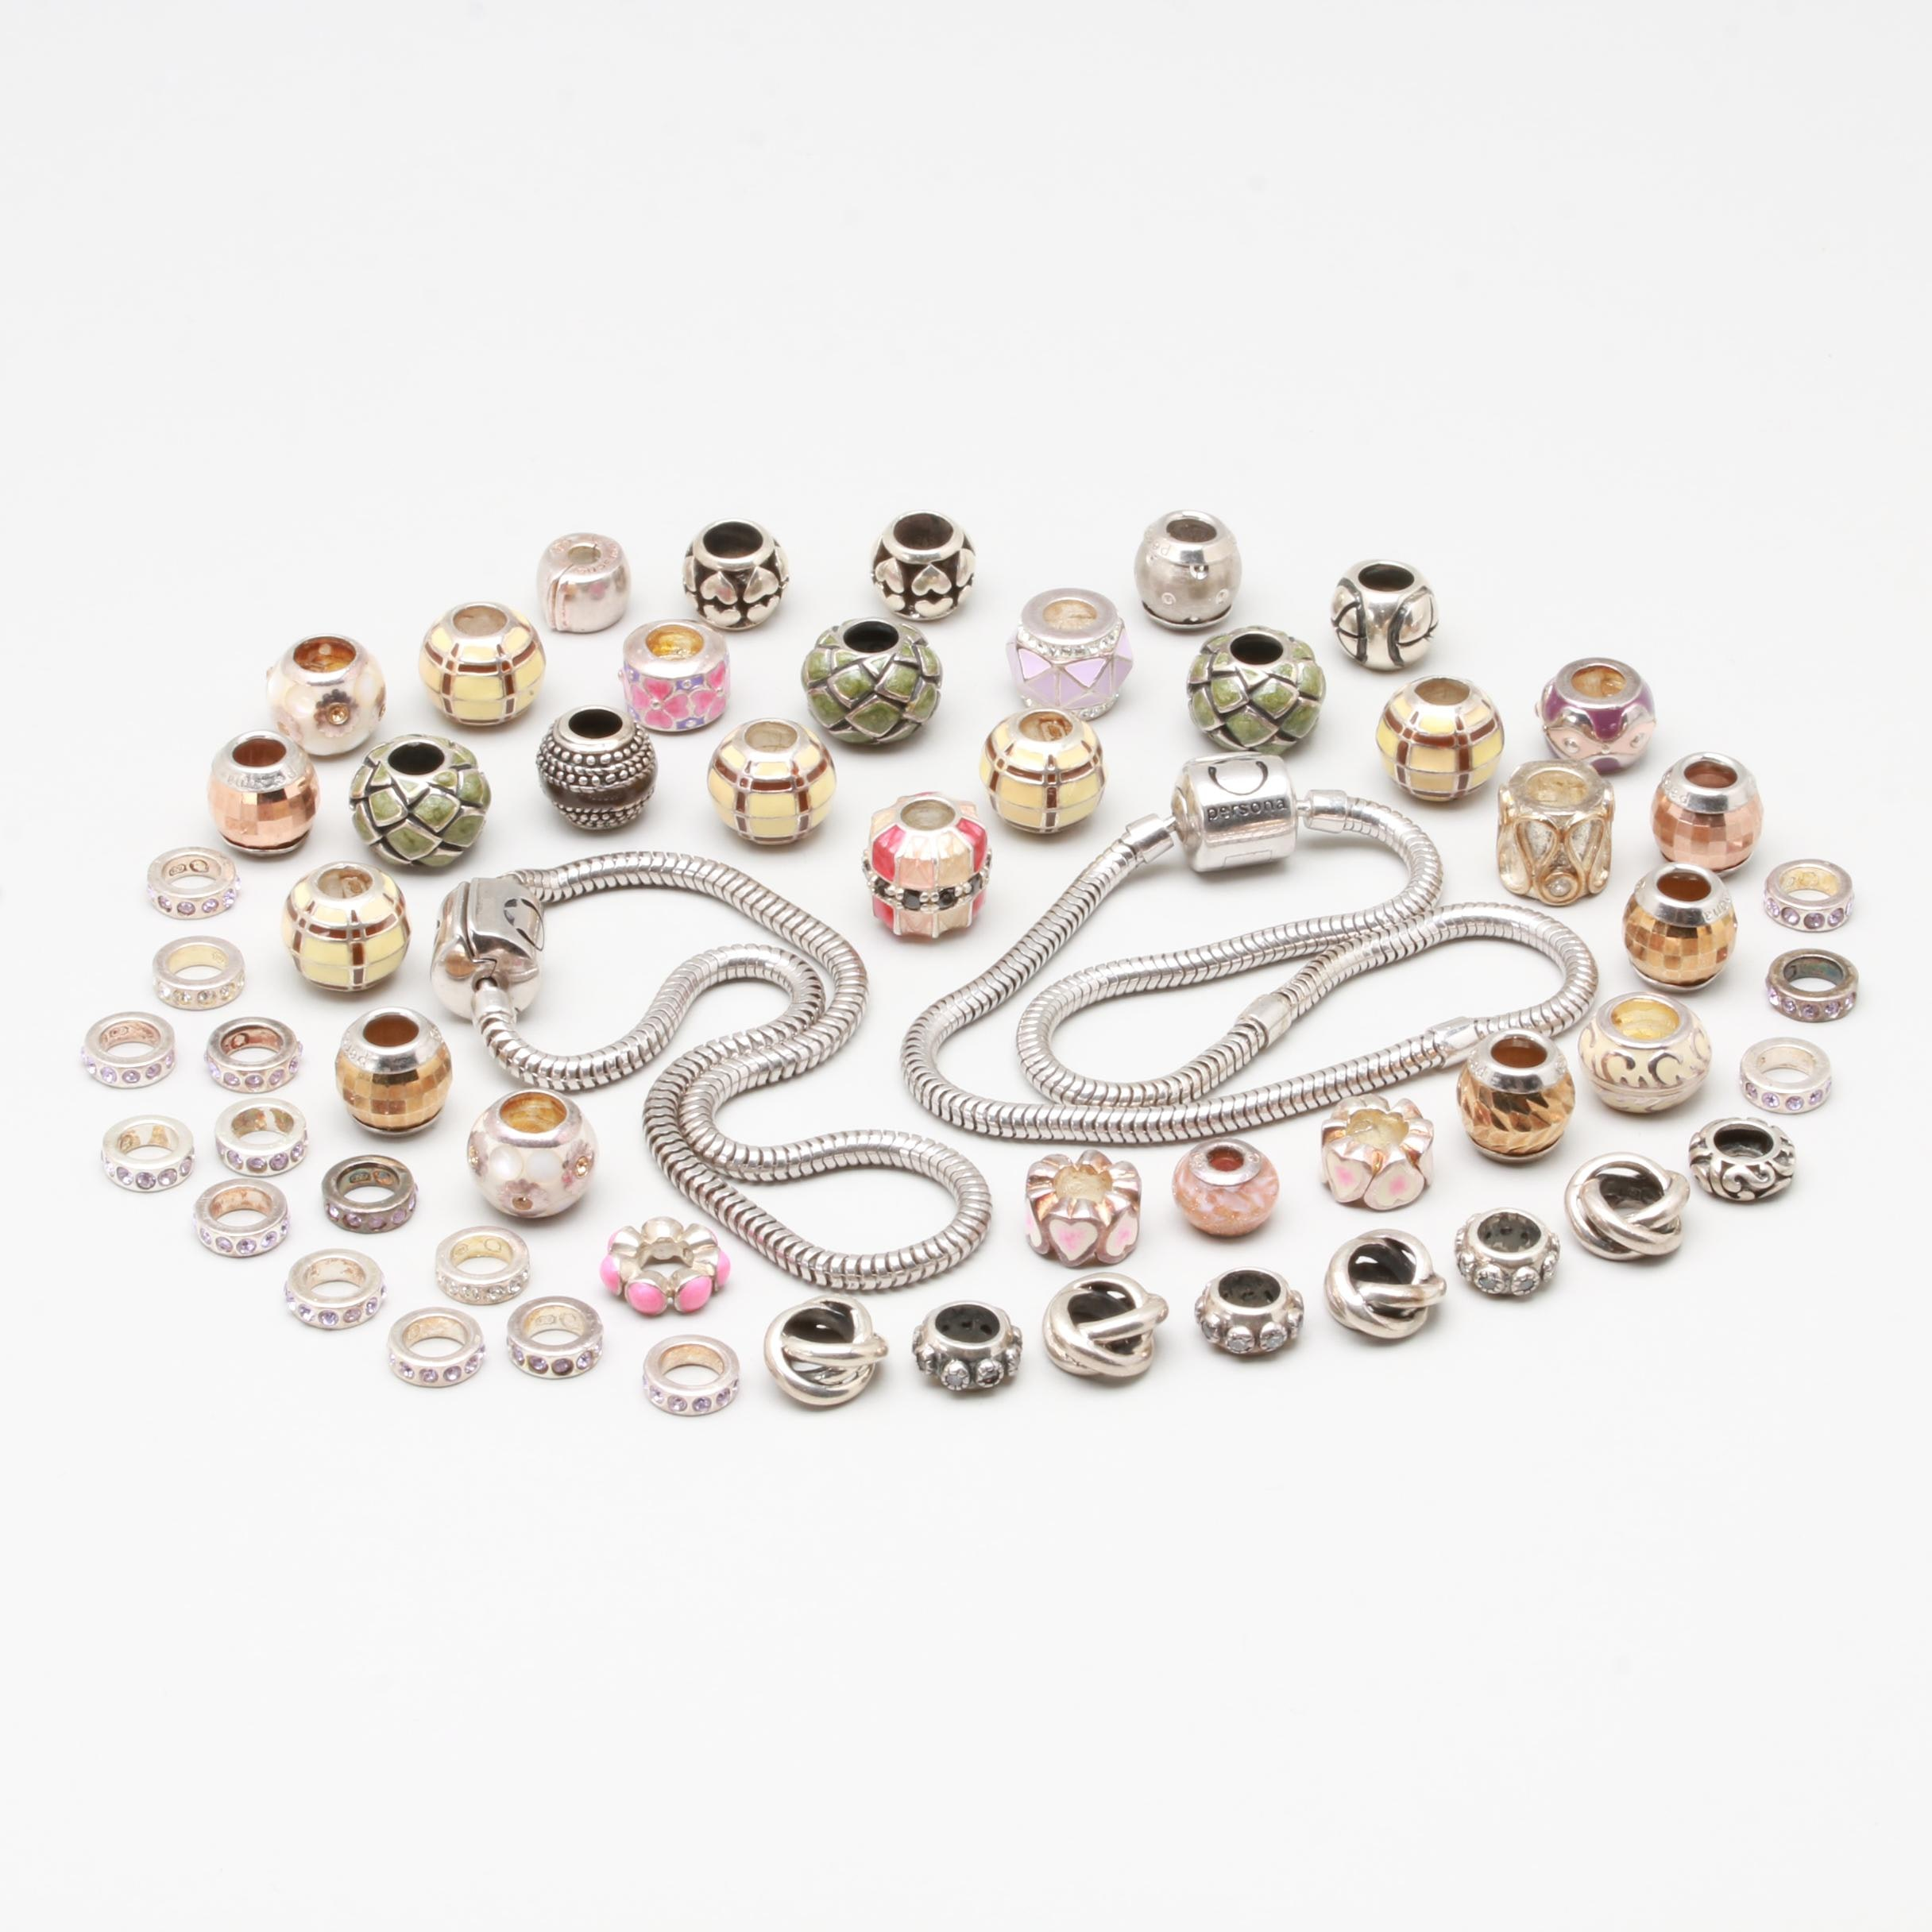 Persona Sterling Silver Beads with Bracelets Selections with Glass and Resin